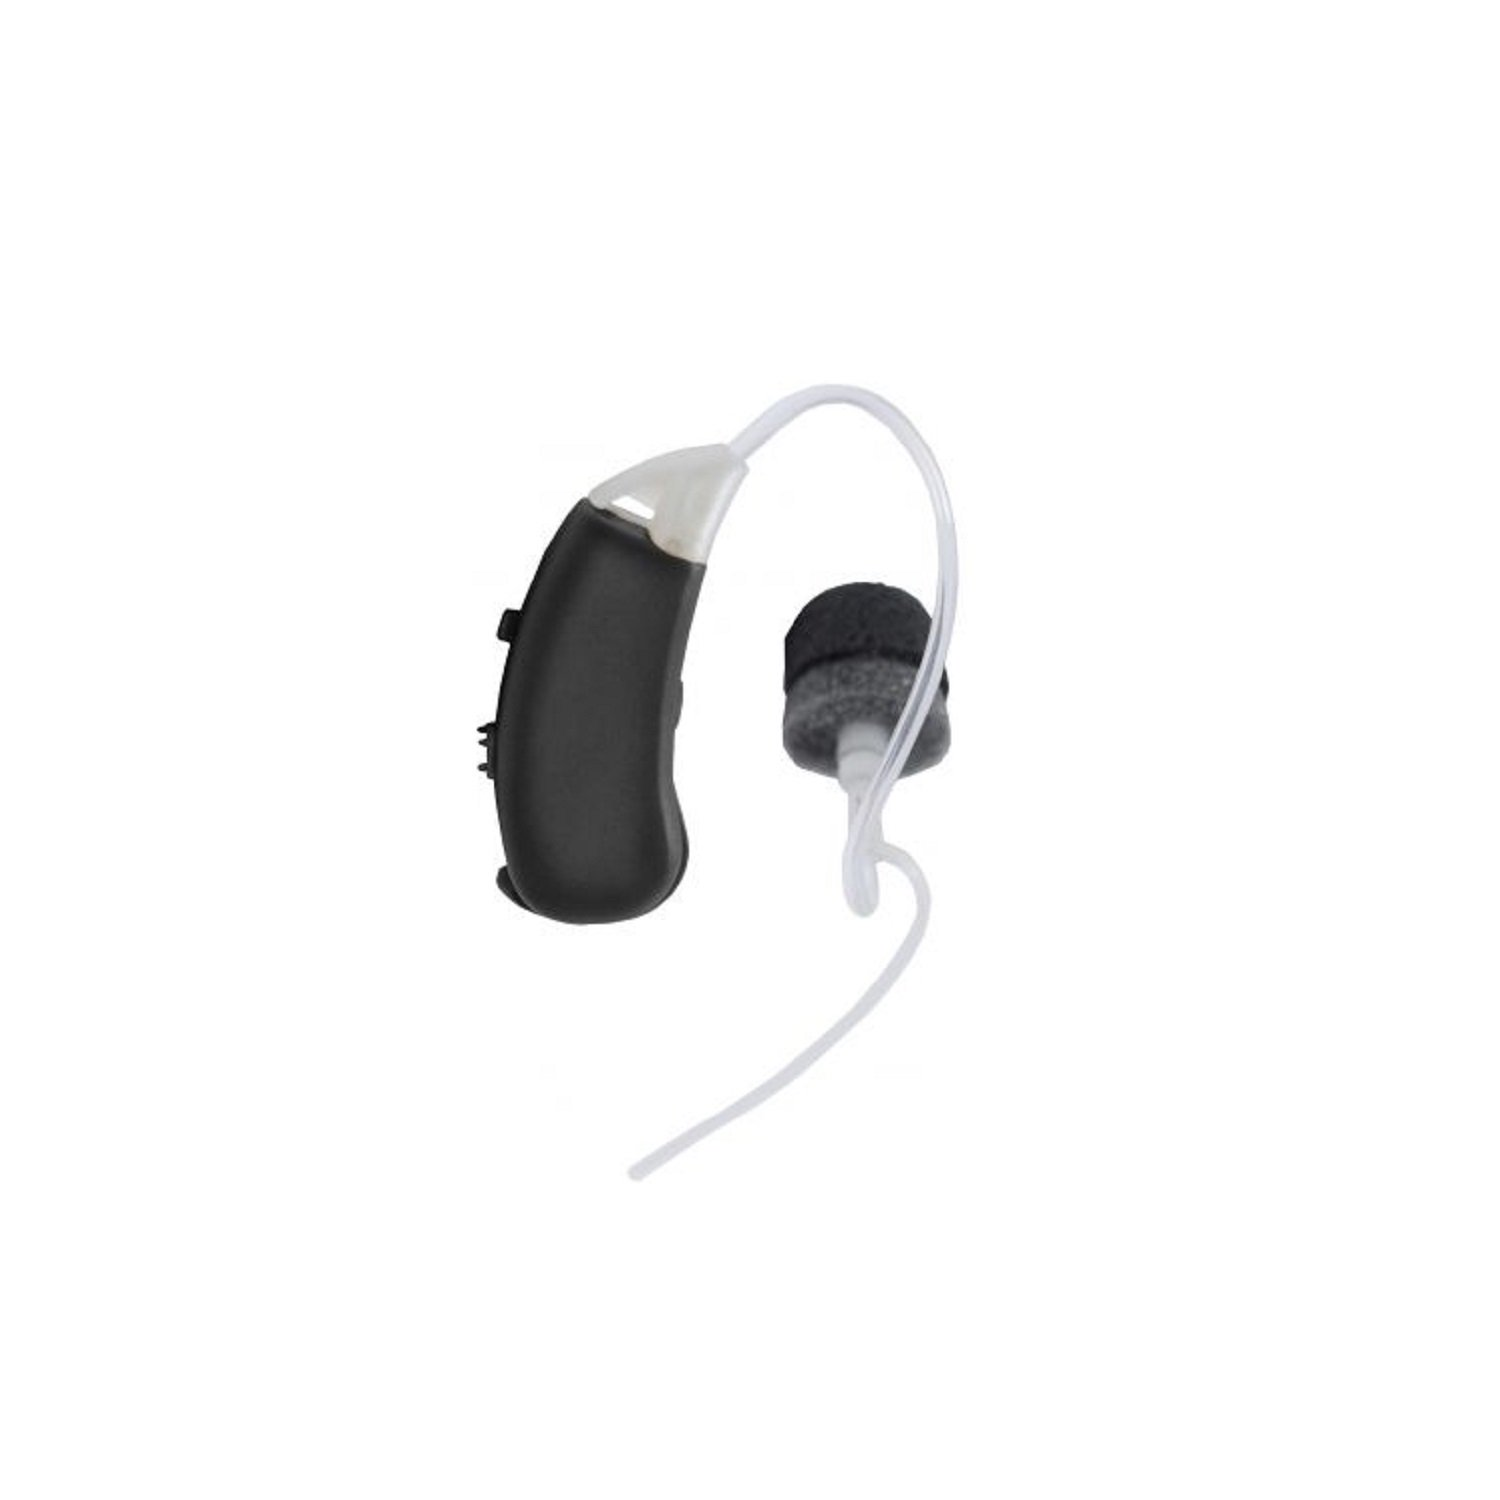 Pro Ears - Pro Hear - Pro Hear IV - Behind the Ear (BTE) - PH4BTE - Digital Hearing Device - Hearing Protection and Noise Amplification - Discreet Aid for Hearing by Pro Ears (Image #1)